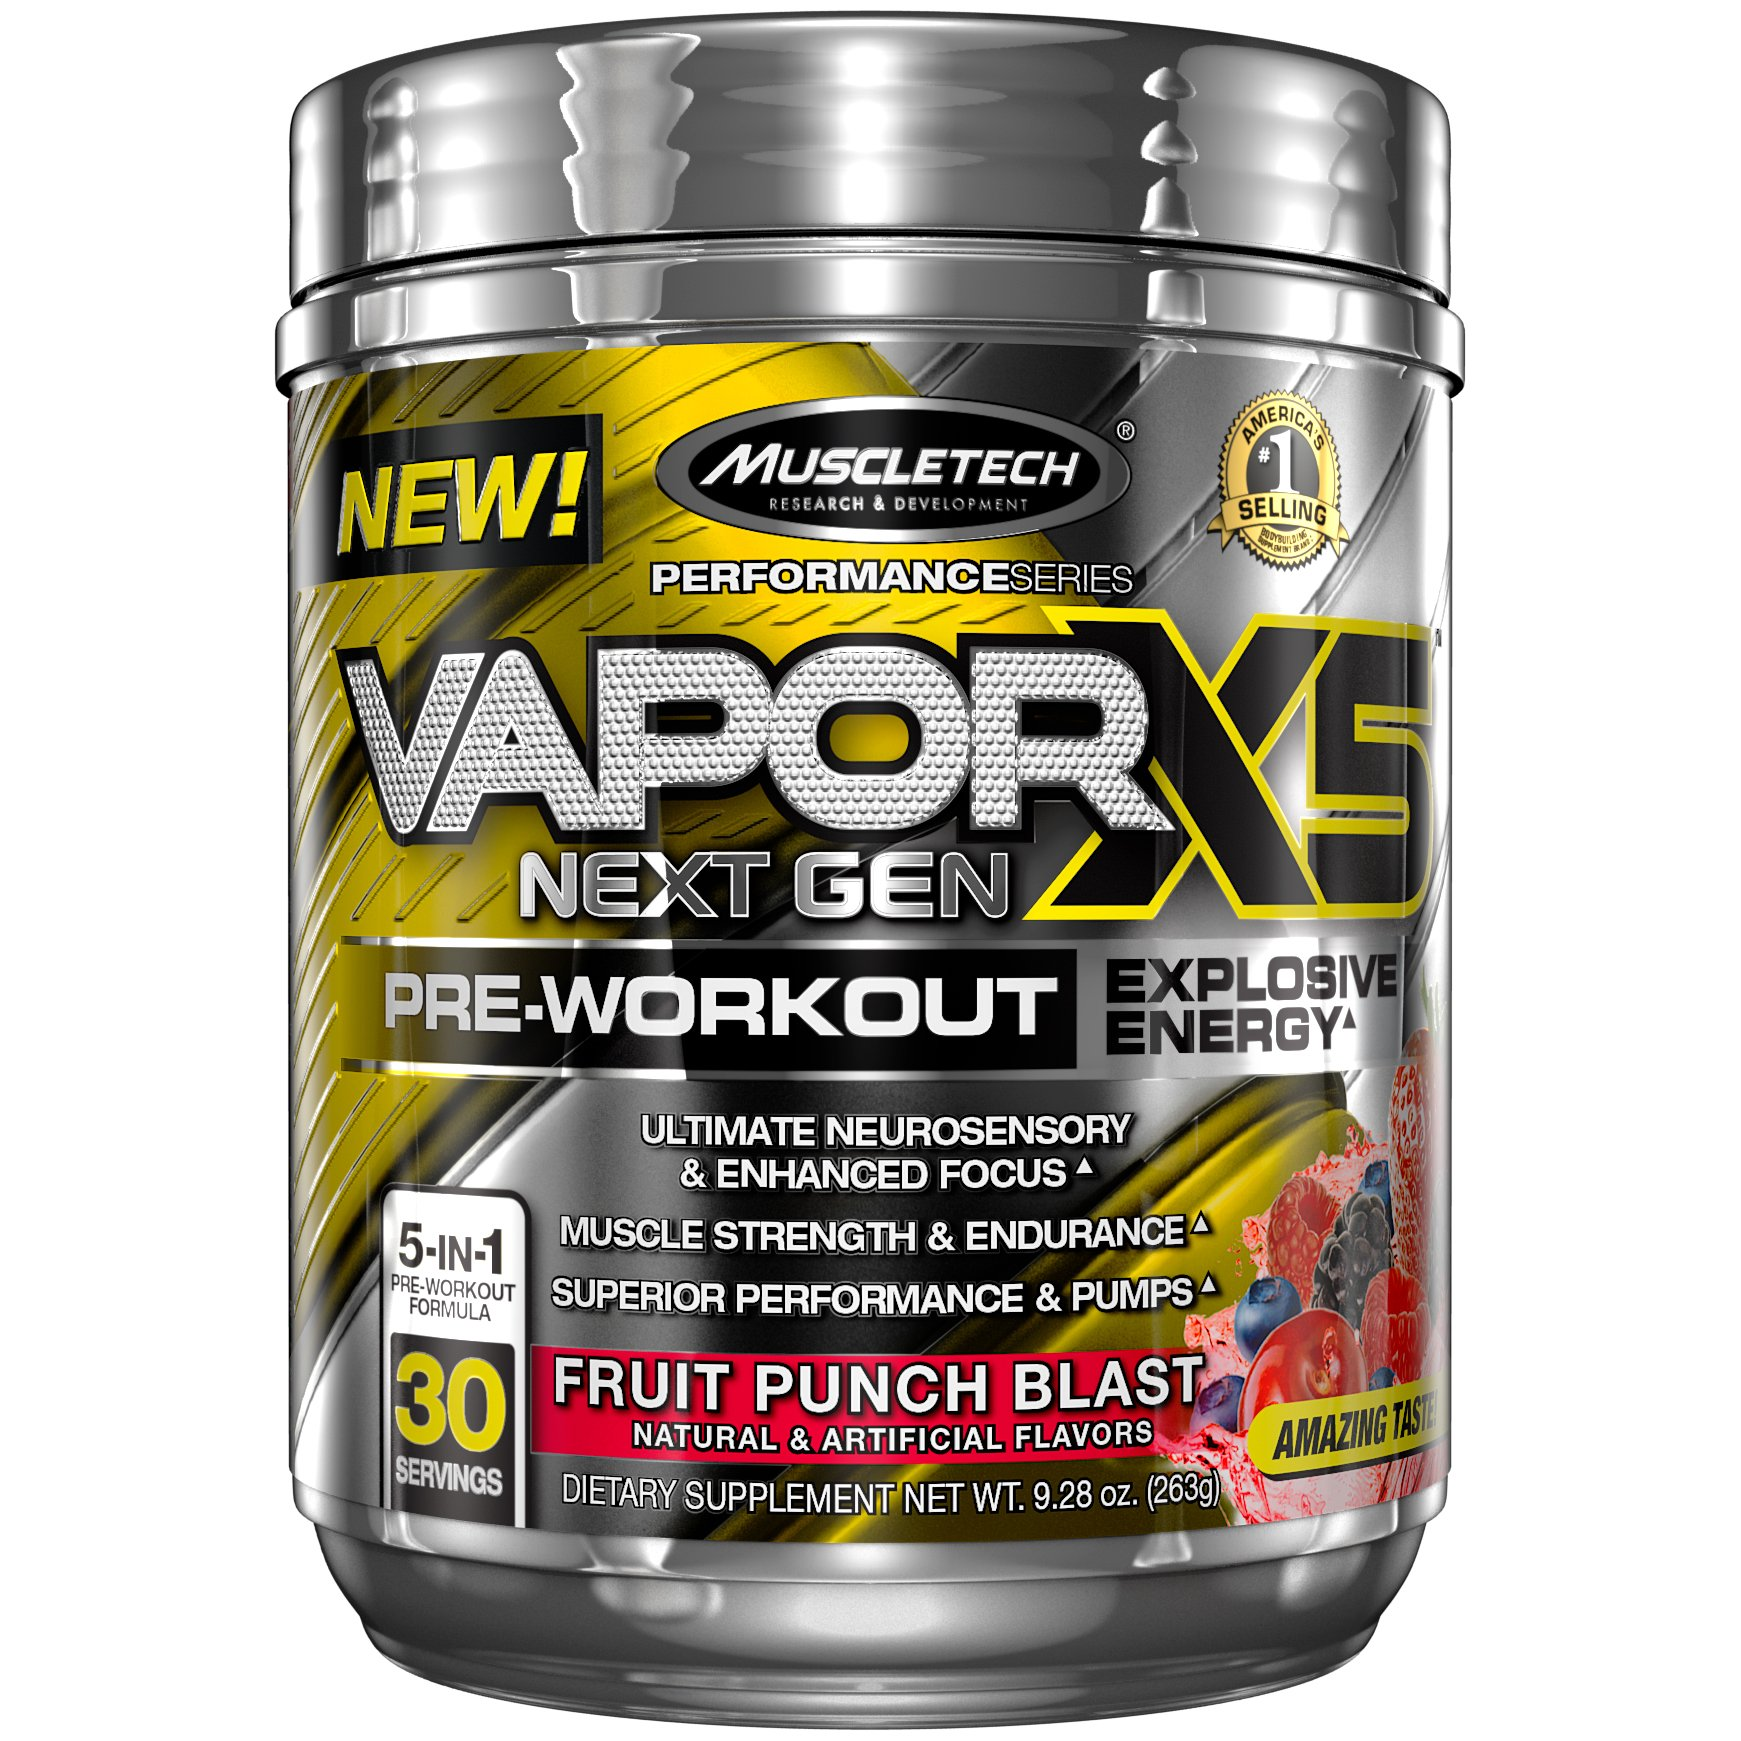 MuscleTech Performance Series Vapor X5, Next Gen Pre-Workout Powder, Fruit Punch Blast, 30 Servings